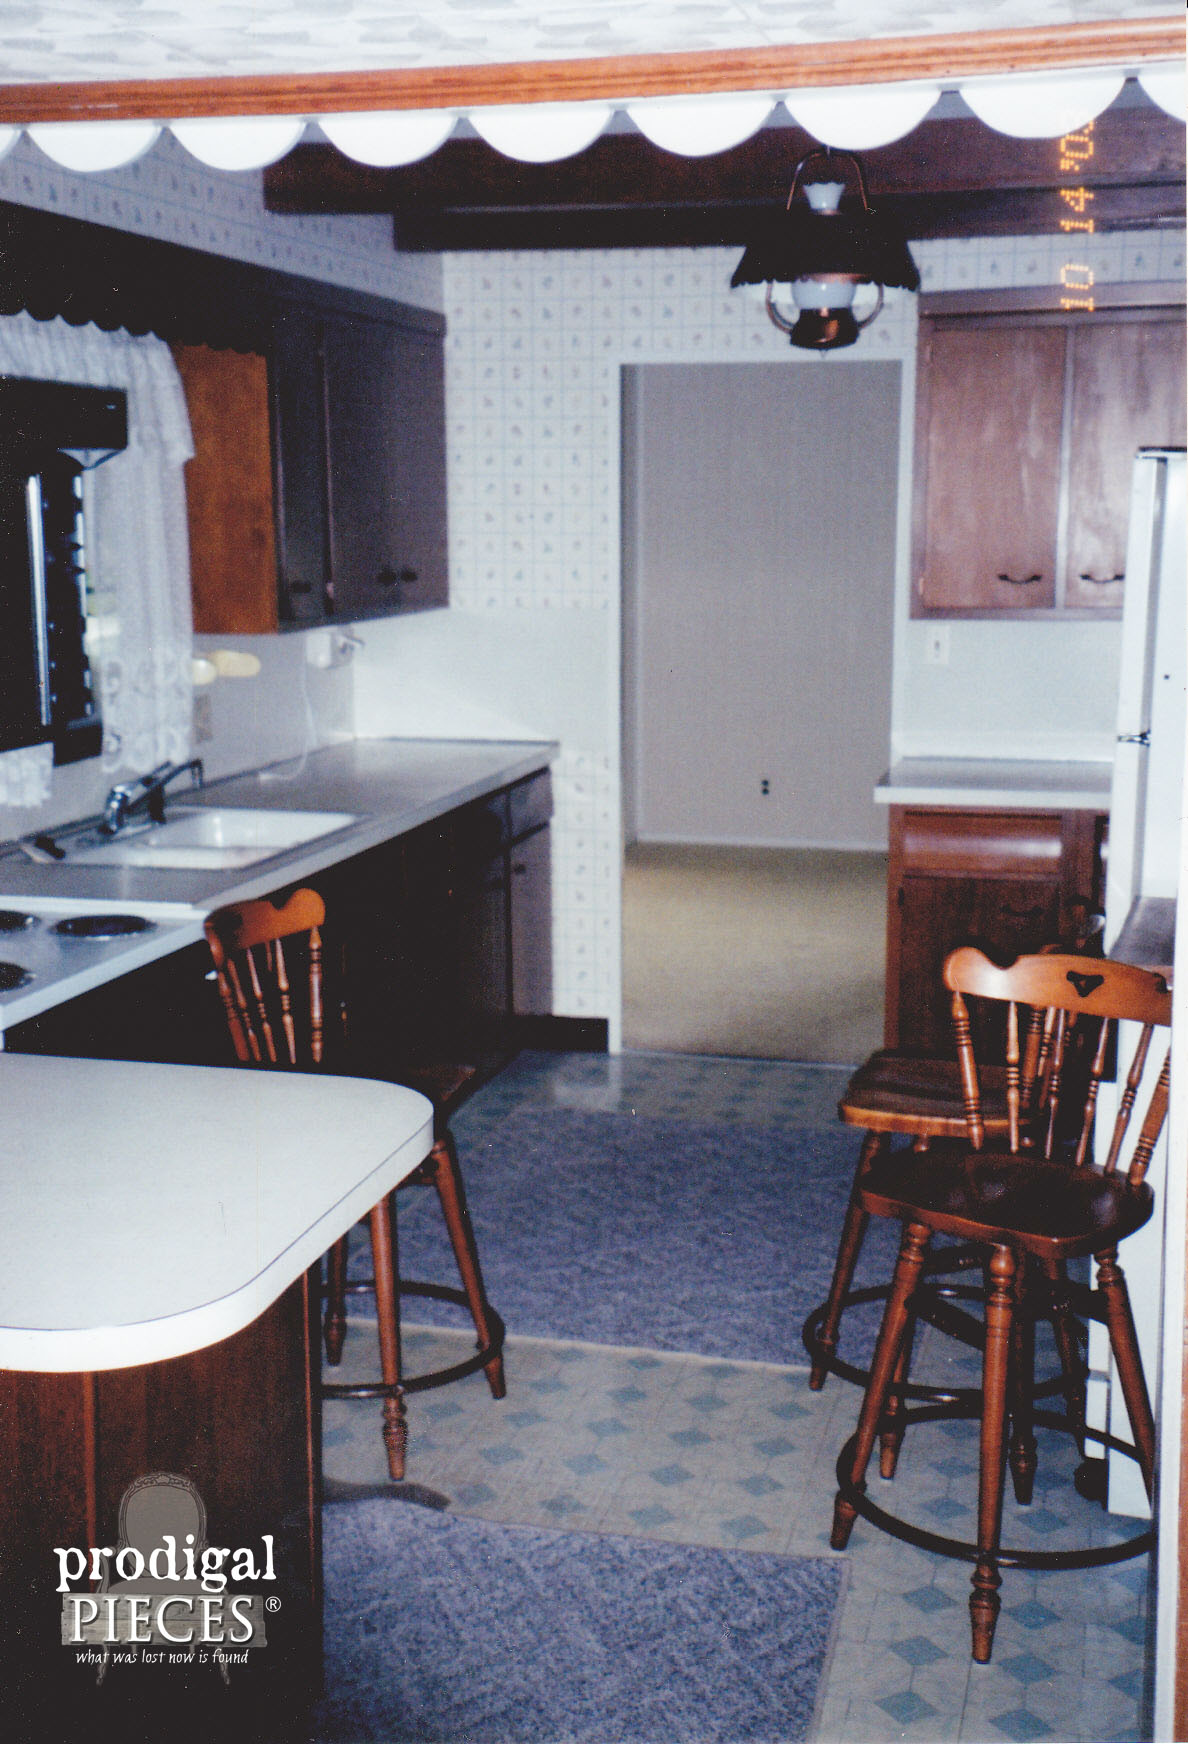 Outdated Kitchen in Before State | Prodigal Pieces | prodigalpieces.com